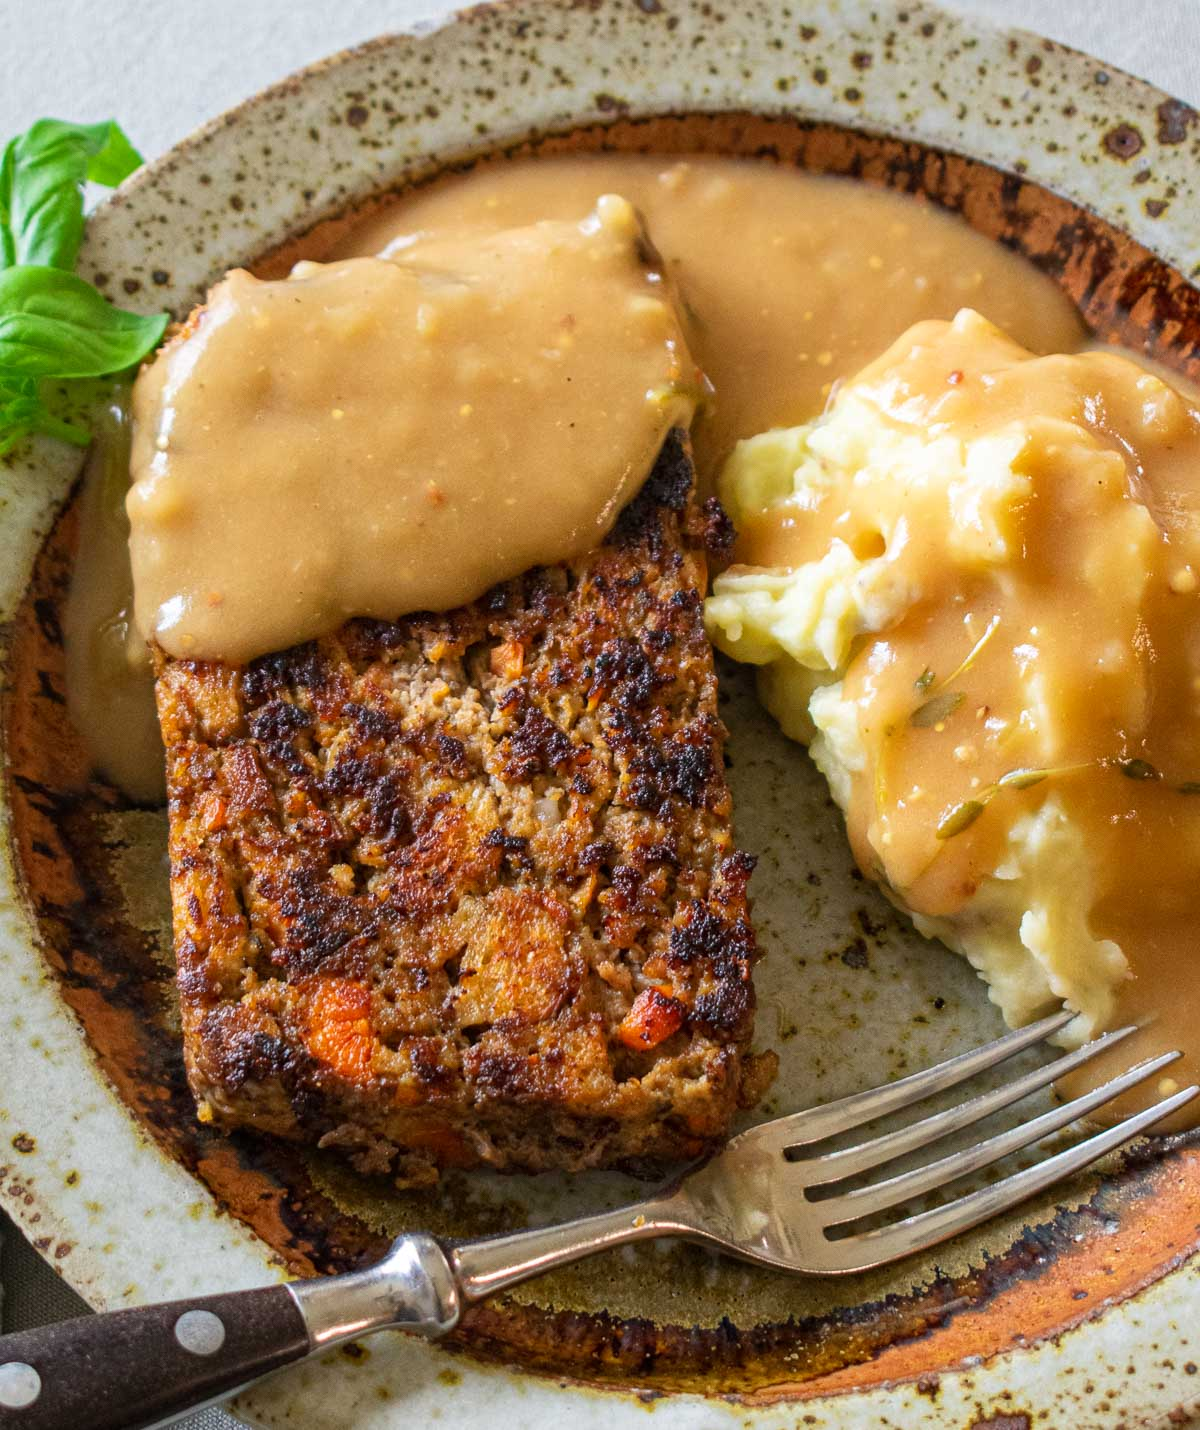 Overhead view of meatloaf, mashed potatoes, and gravy.